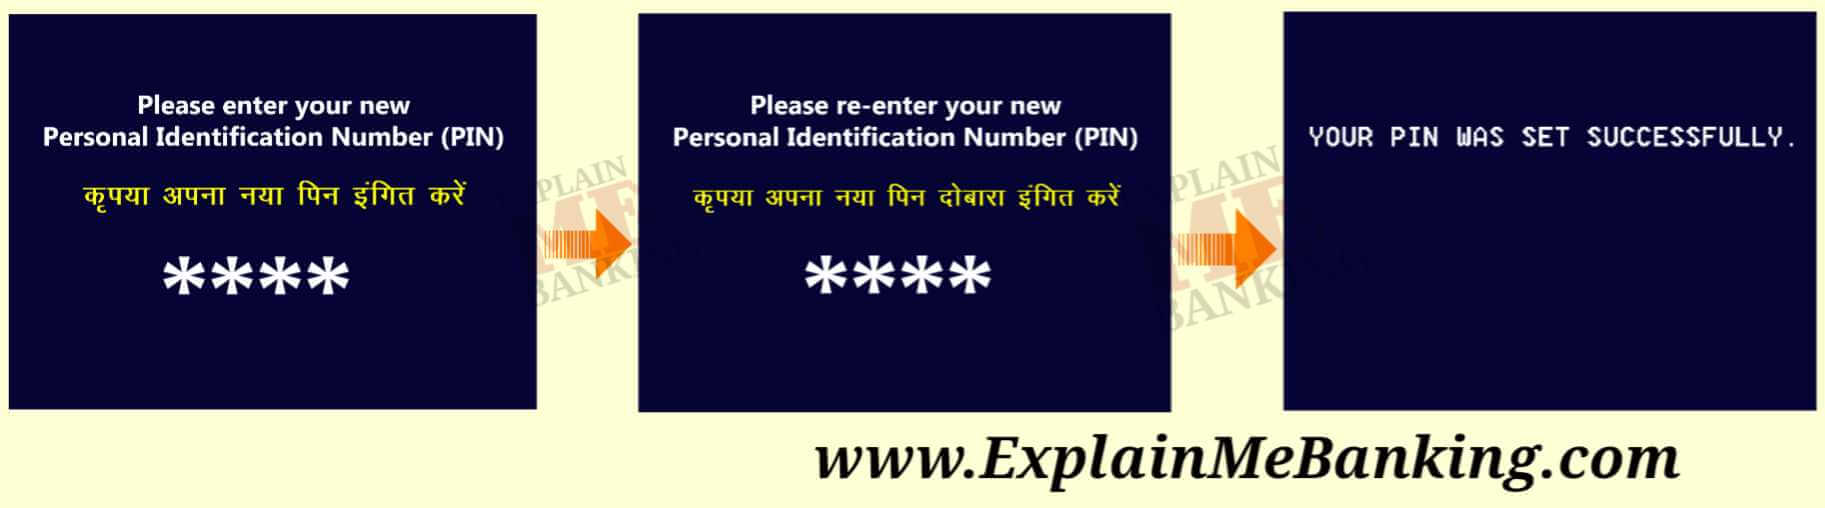 Punjab & Sind Bank New ATM PIN Set